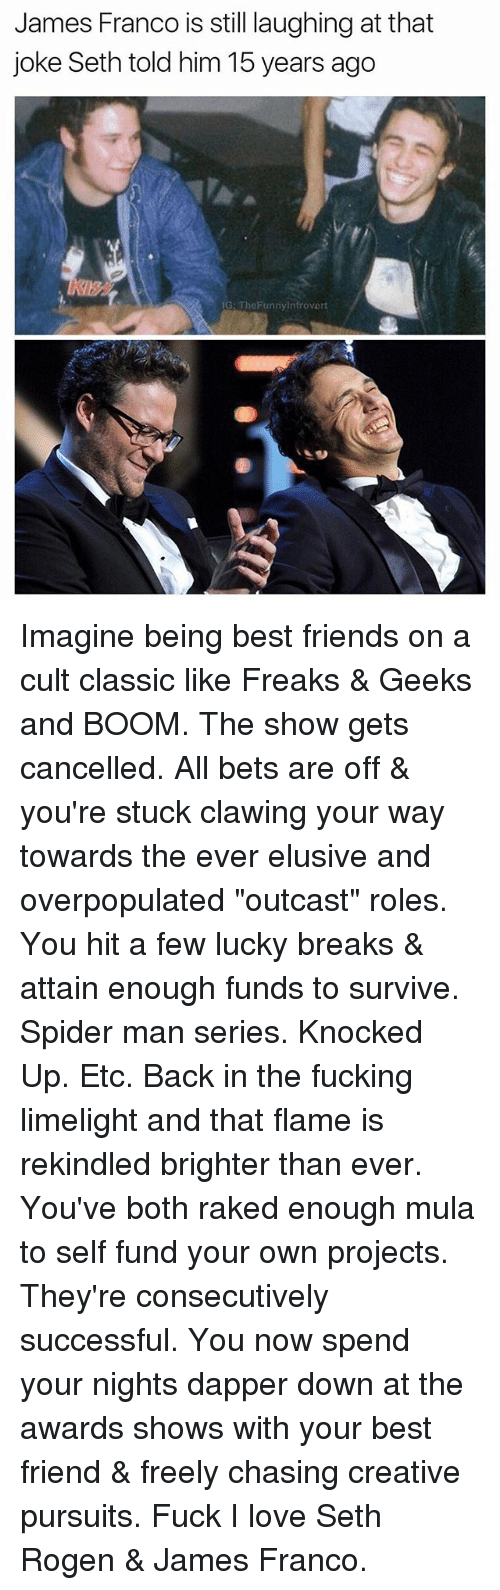 """mula: James Franco is still laughing at that  joke Seth told him 15 years ago  G: TheFunnyintrovert  息ッ Imagine being best friends on a cult classic like Freaks & Geeks and BOOM. The show gets cancelled. All bets are off & you're stuck clawing your way towards the ever elusive and overpopulated """"outcast"""" roles. You hit a few lucky breaks & attain enough funds to survive. Spider man series. Knocked Up. Etc. Back in the fucking limelight and that flame is rekindled brighter than ever. You've both raked enough mula to self fund your own projects. They're consecutively successful. You now spend your nights dapper down at the awards shows with your best friend & freely chasing creative pursuits. Fuck I love Seth Rogen & James Franco."""